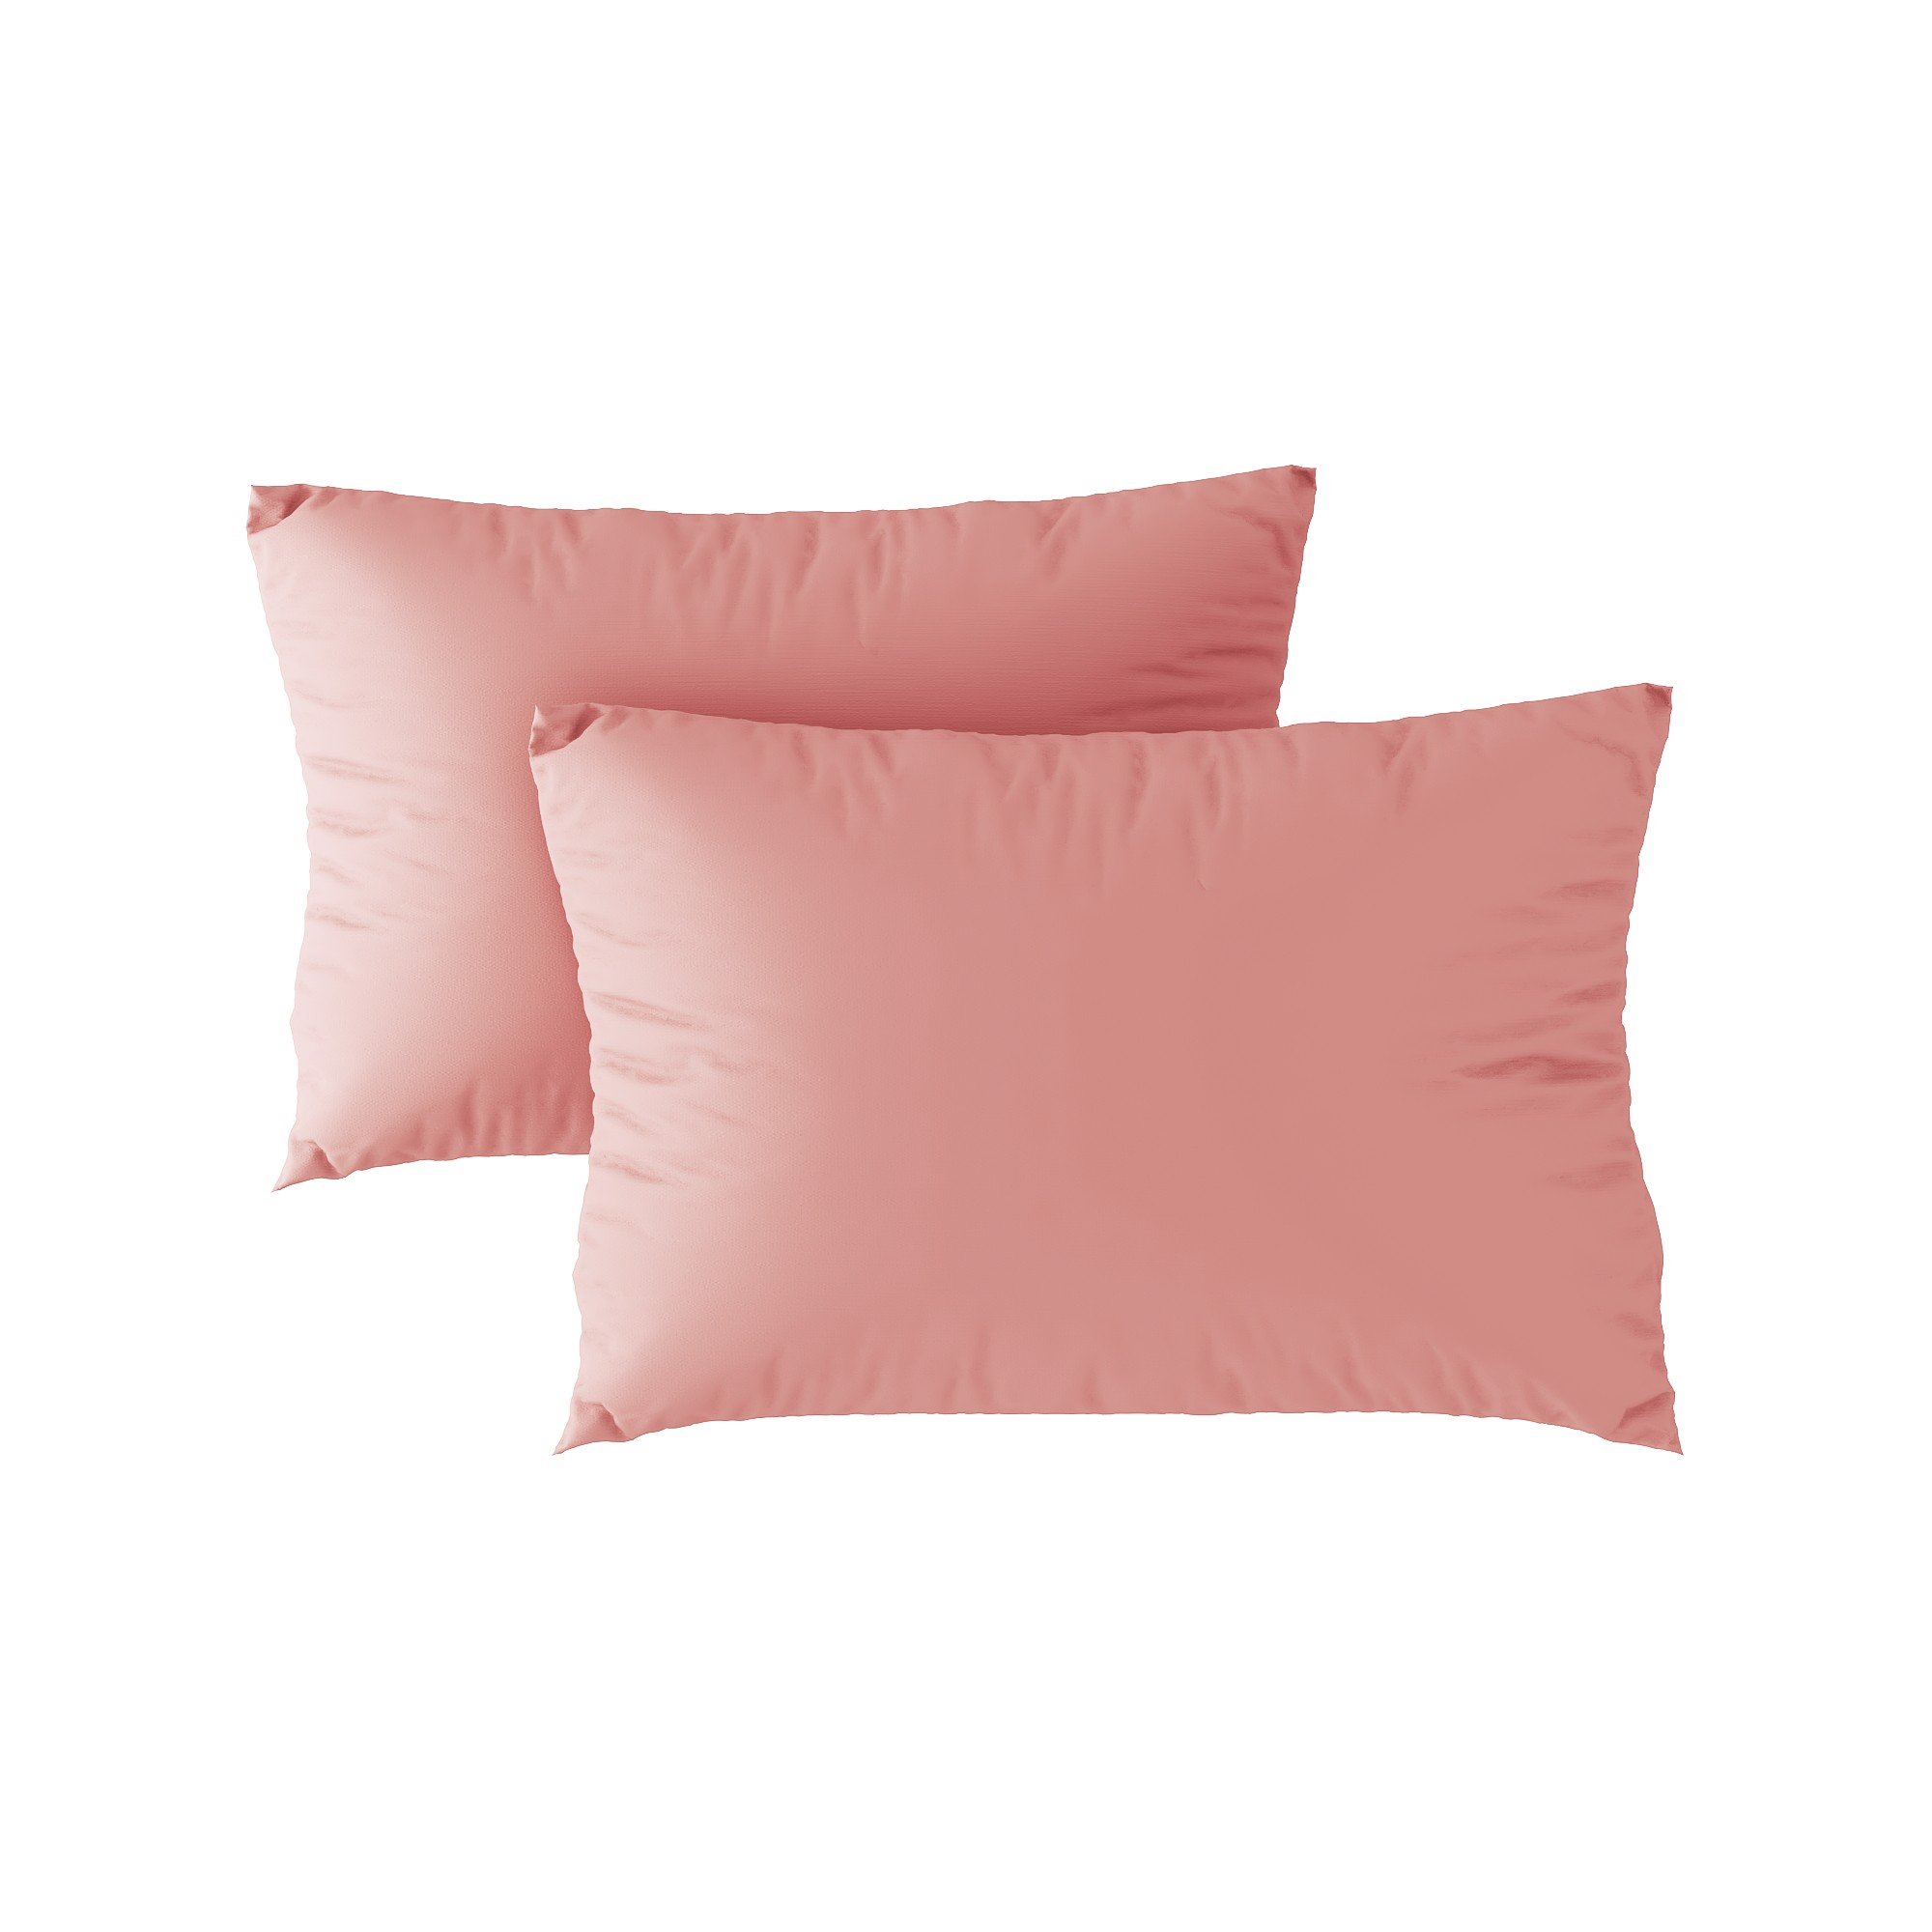 Standard pillow case 08 Light pink (2pcs)